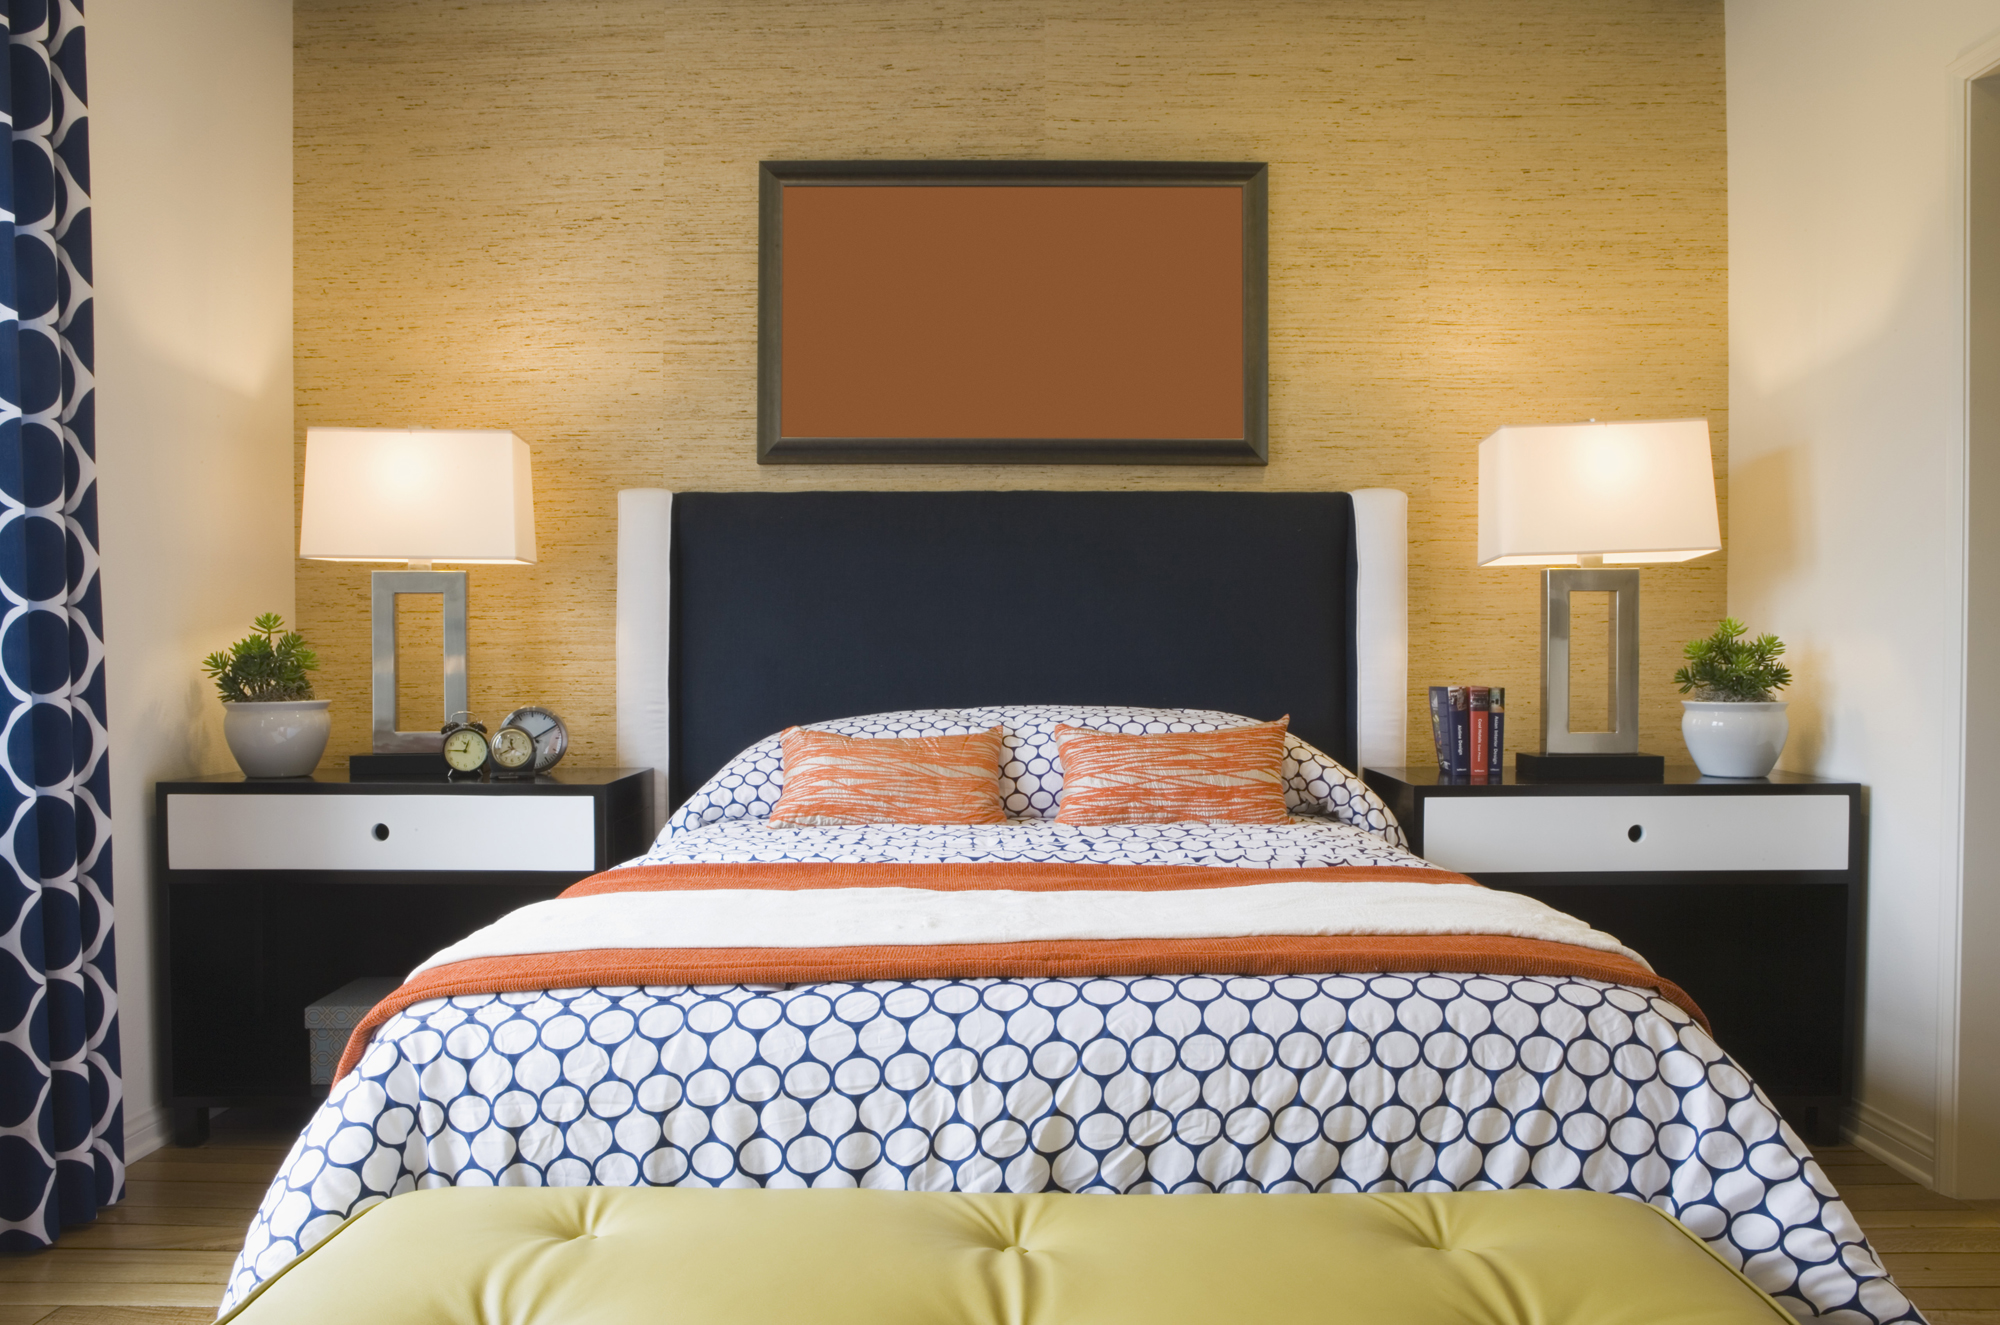 Bed with wicker headboard and blue and orange bedding